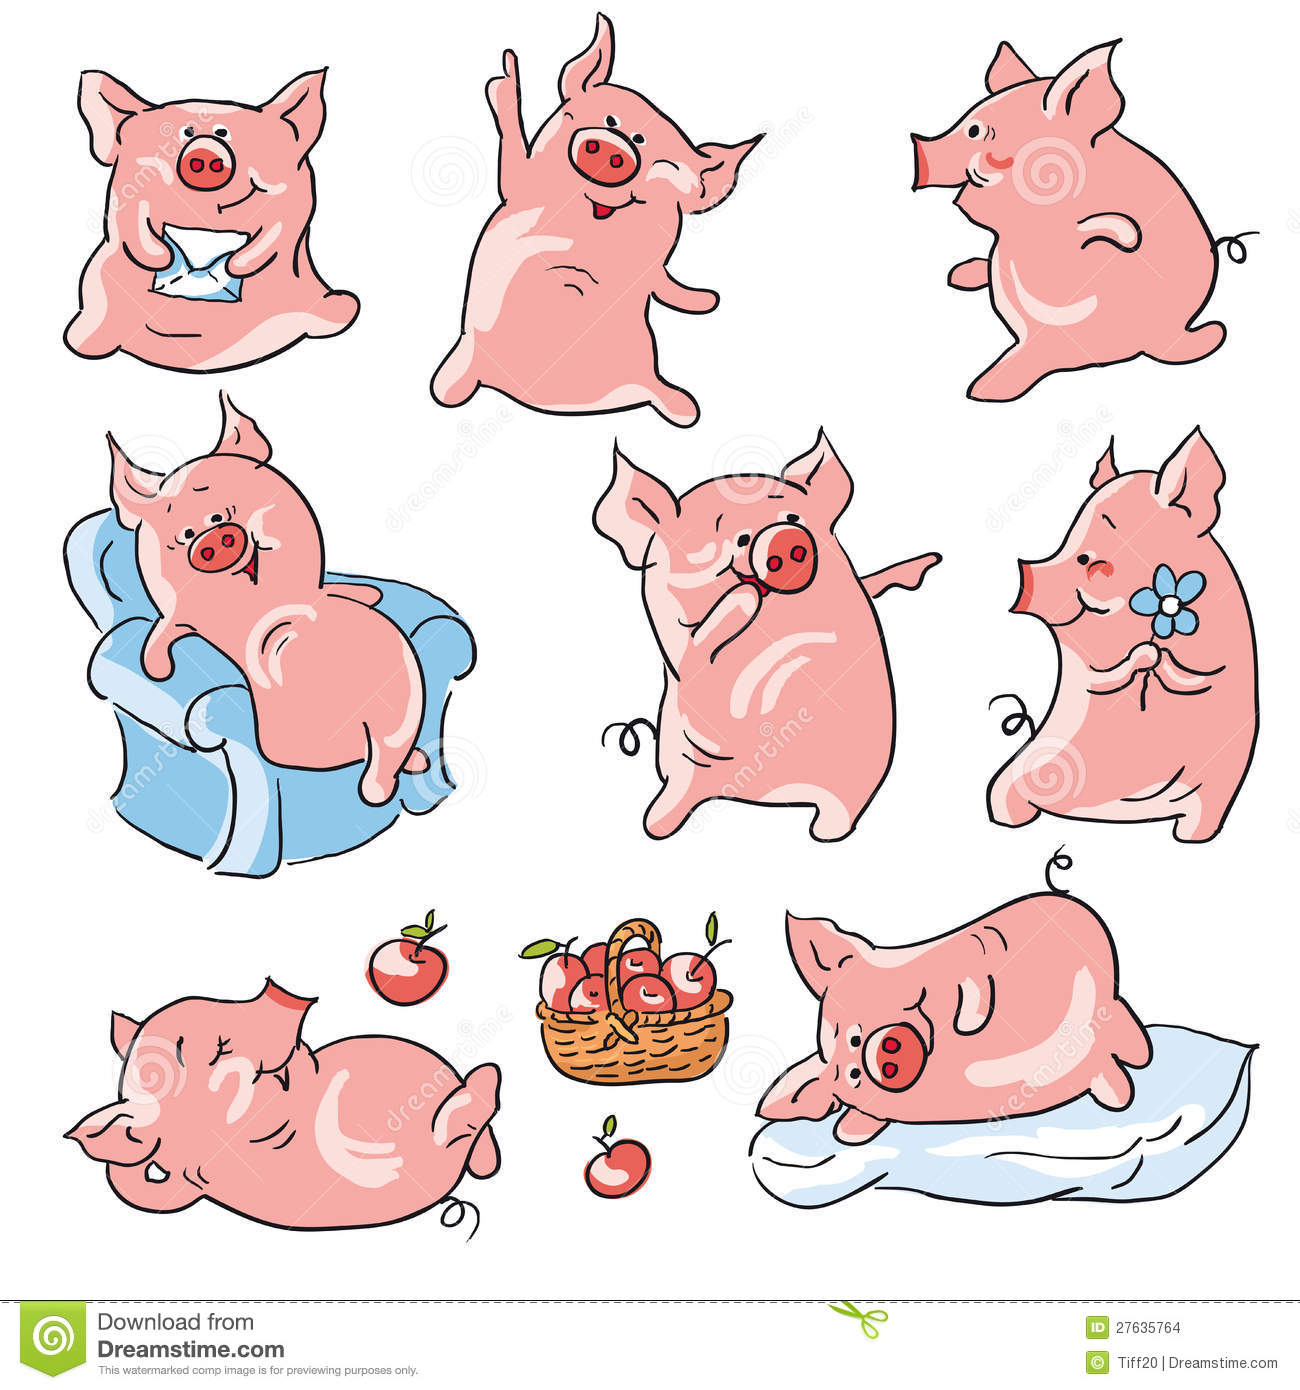 Eight funny cartoon pigs , isolated from a background.